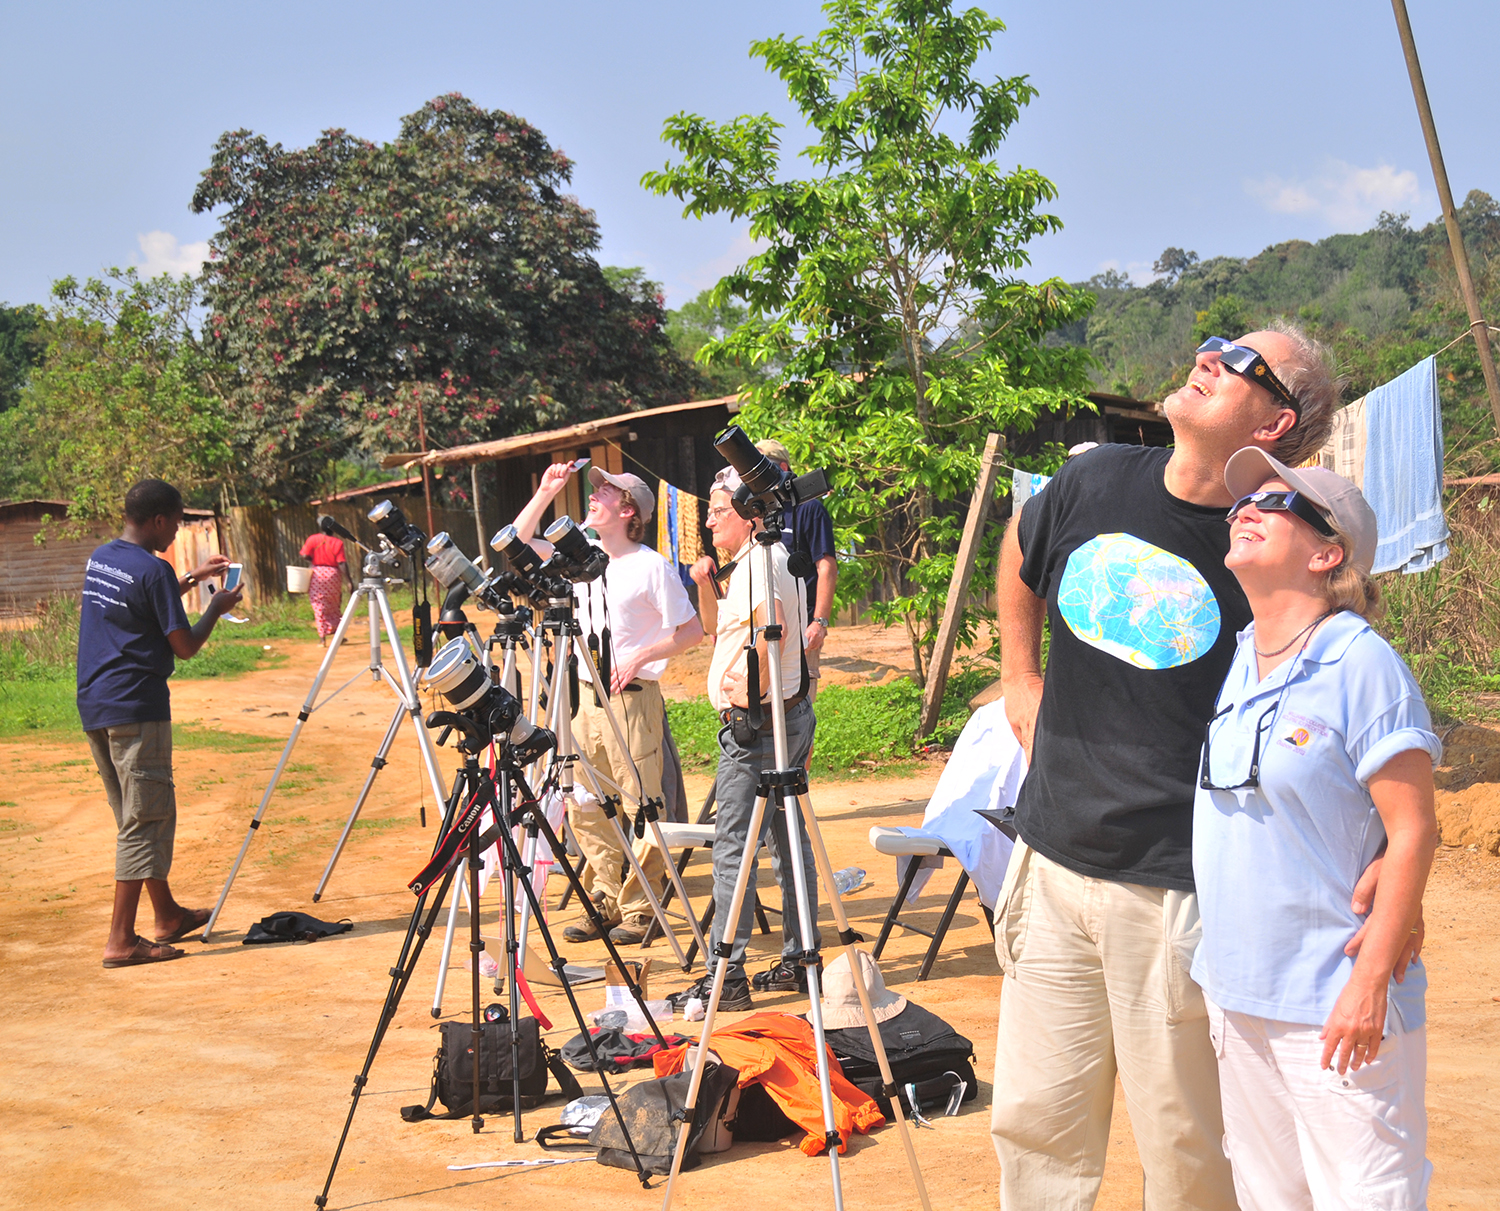 Safely viewing the partial phase of the solar eclipse with eclipse glasses in Gabon, Africa, November 2013. @2013 Michael Zeiler.